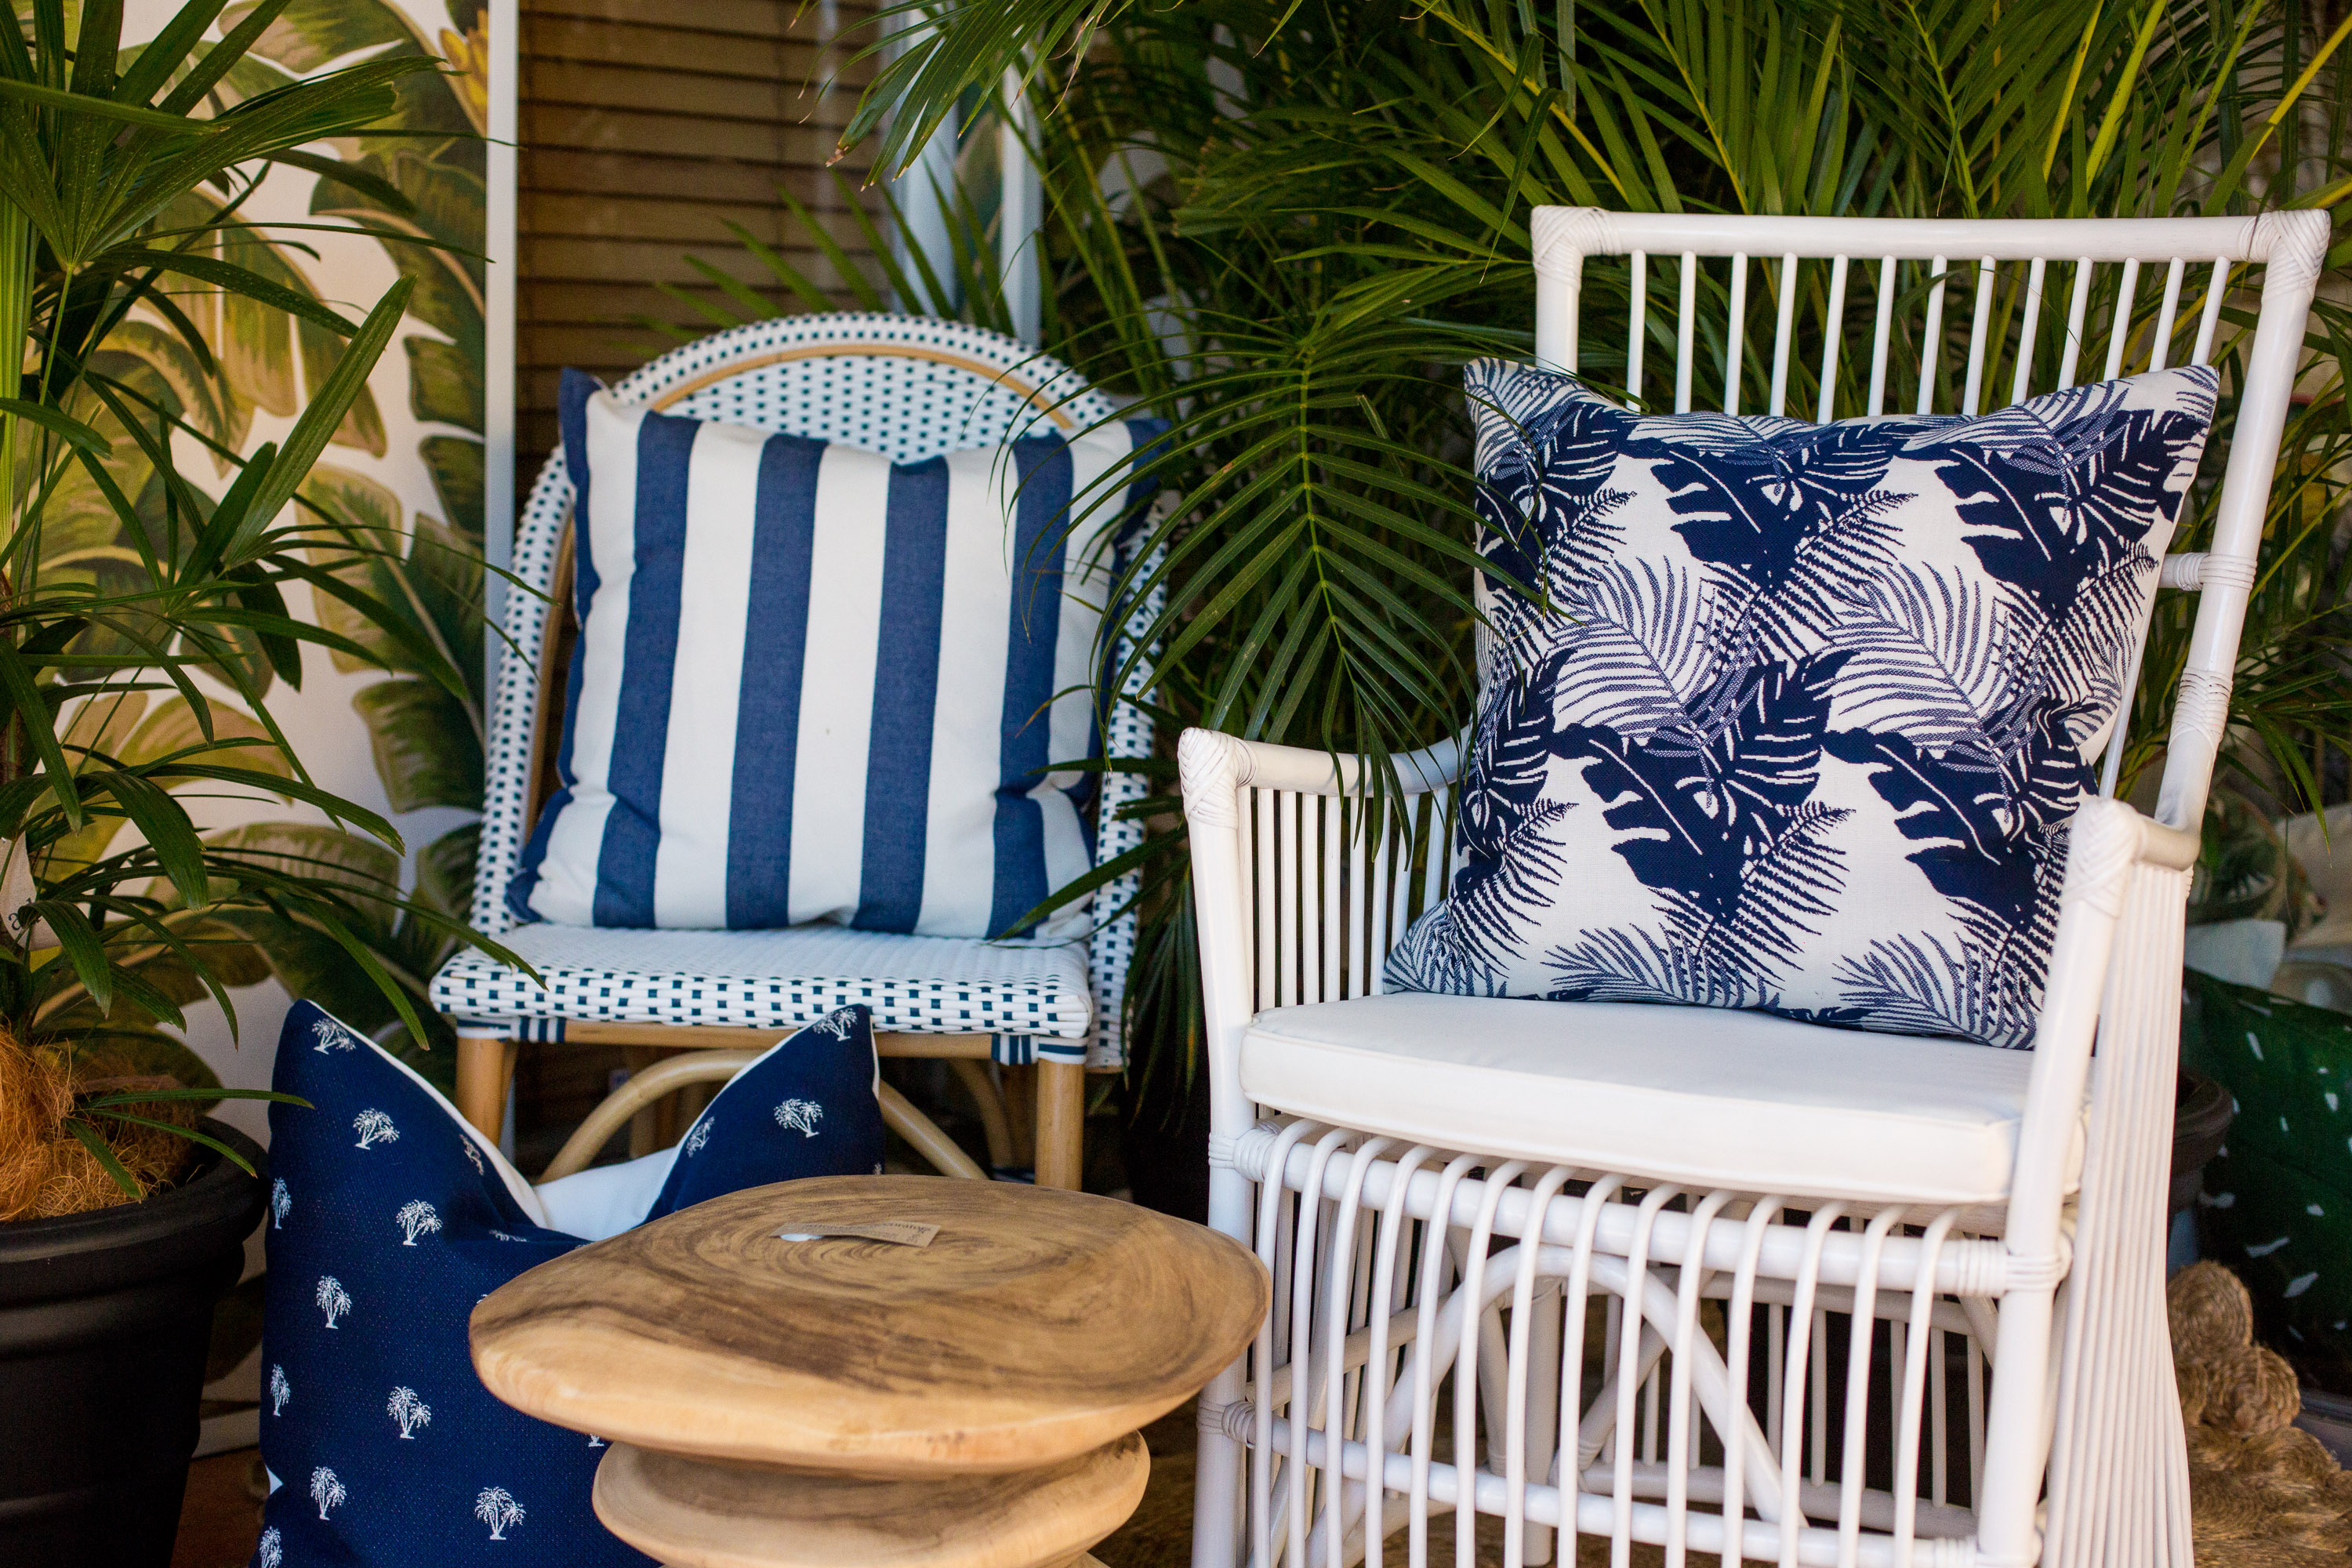 Outdoor fabrics have been known for their rough scratchy texture to adhere to the durability factor but with new formulas and technology we can now have